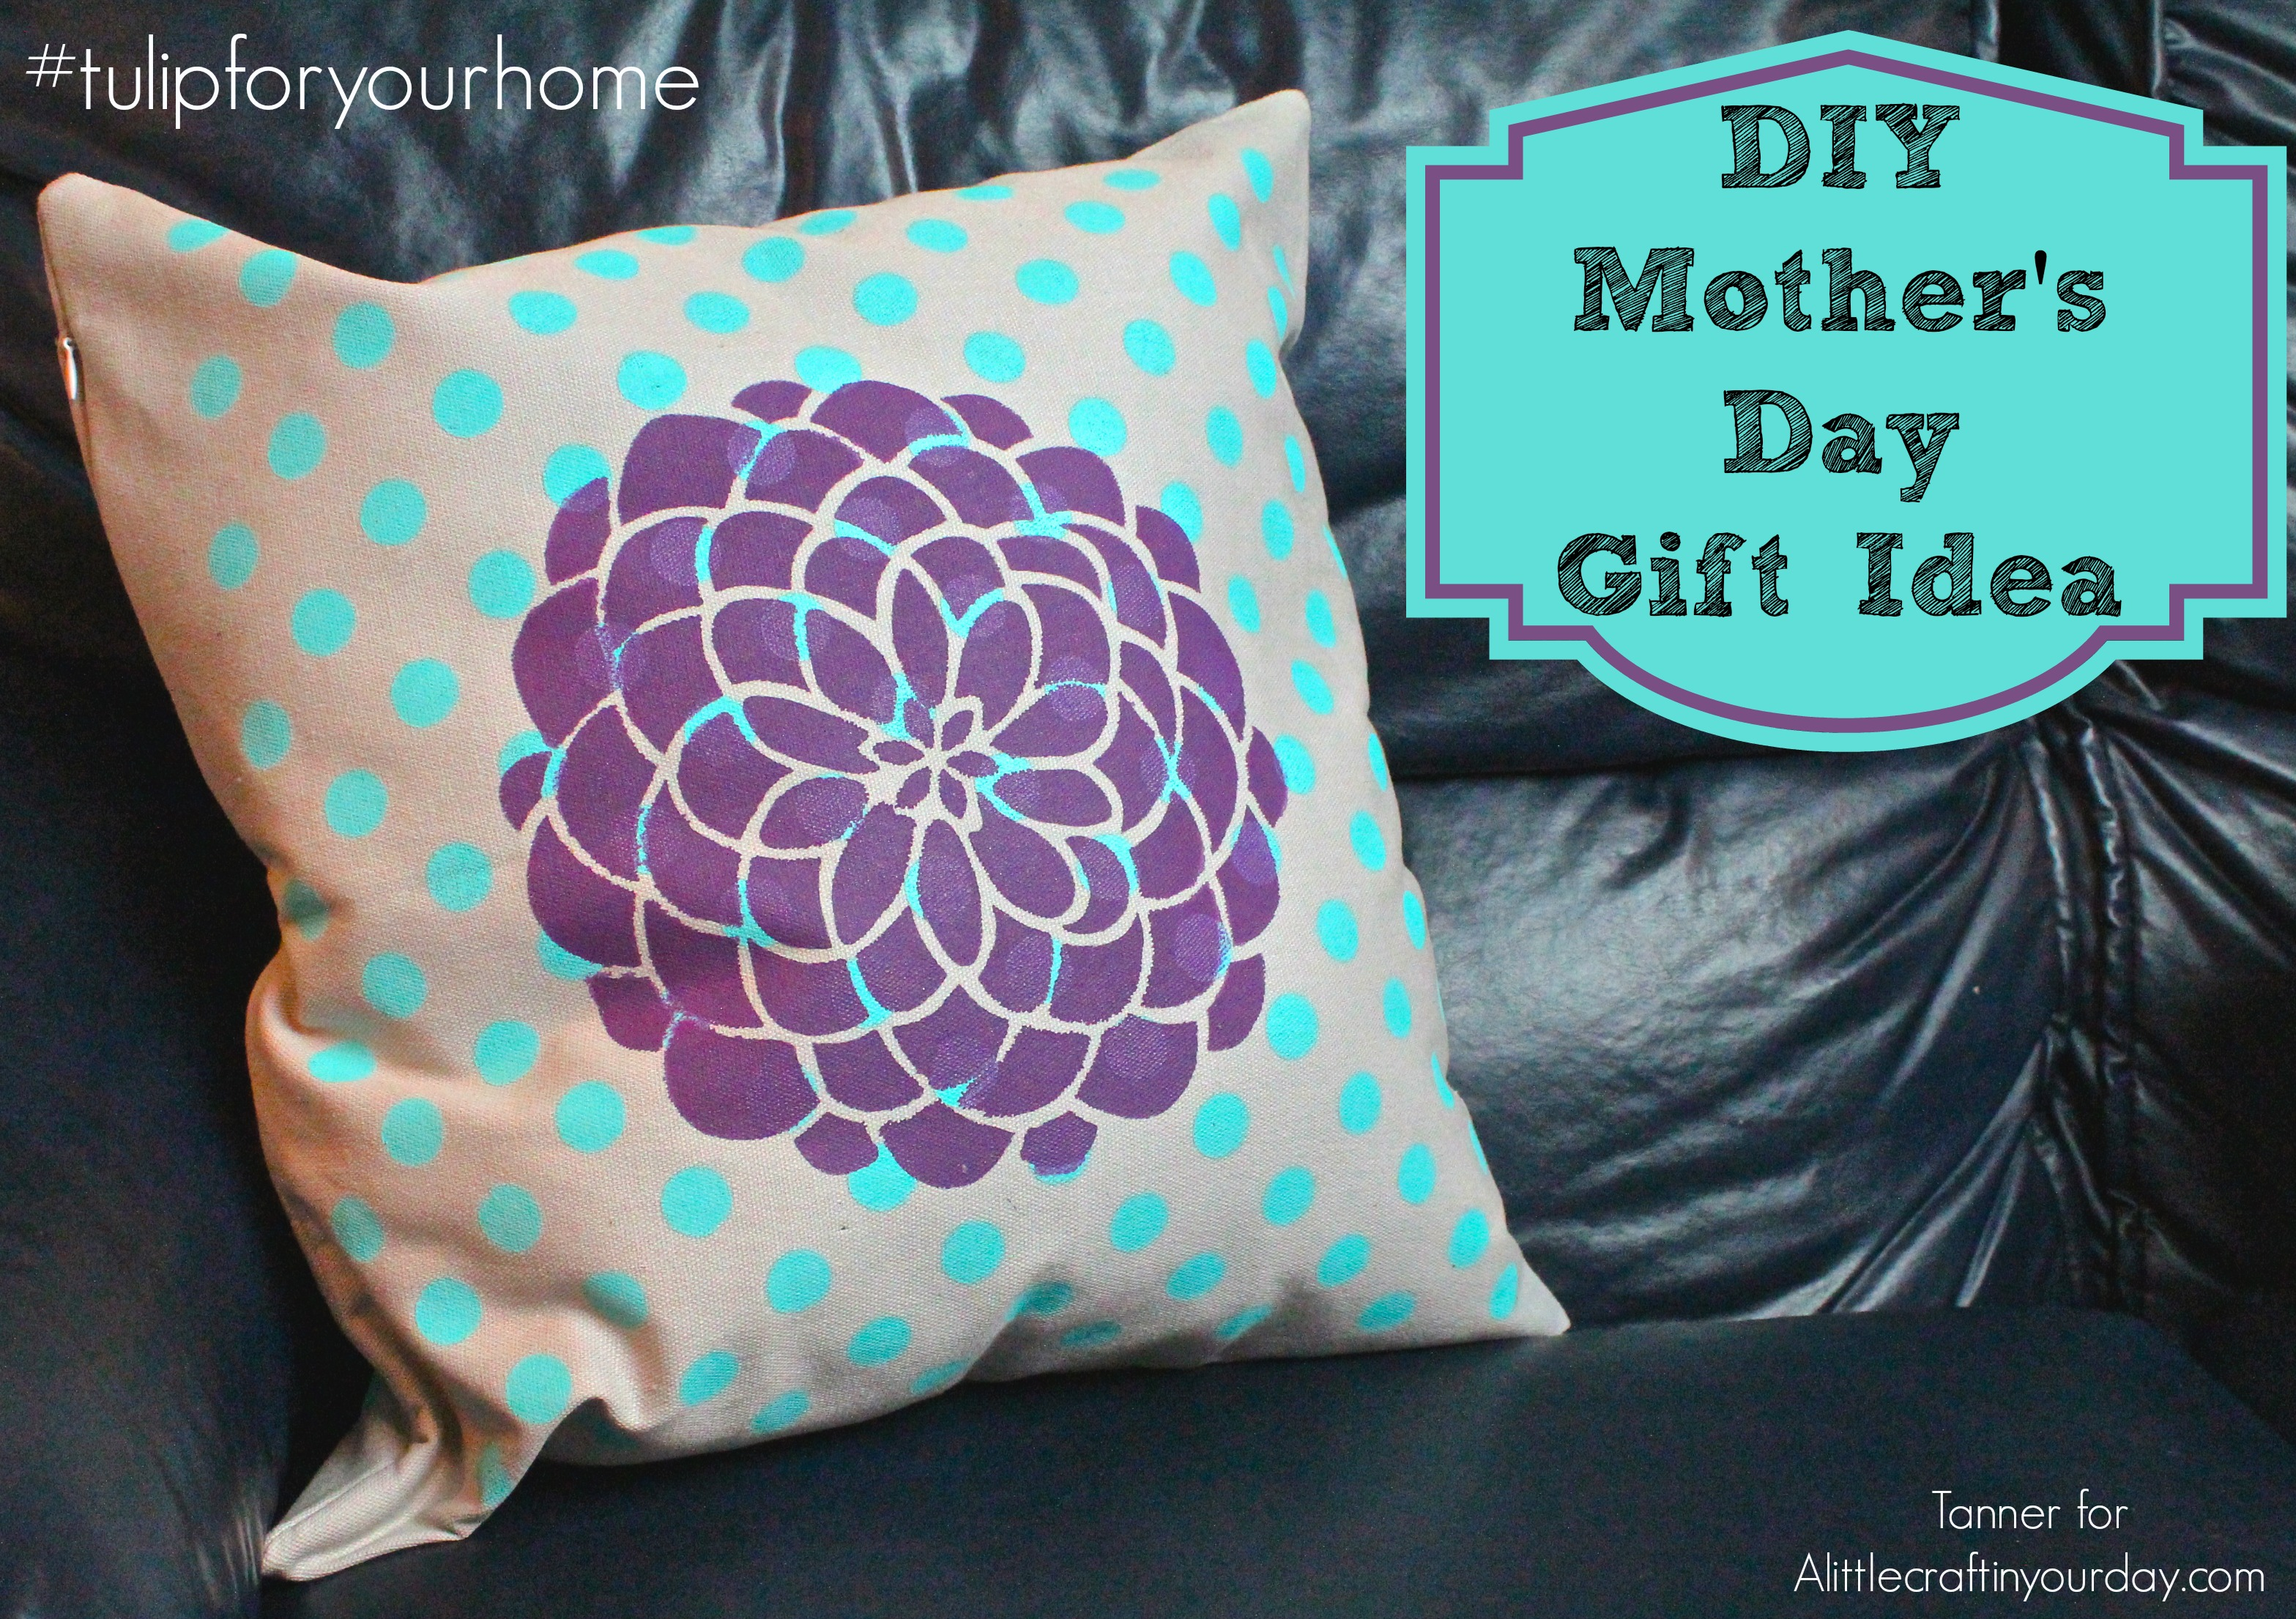 DIY Mother\'s Day Gift #tulipforyourhome - A Little Craft In Your Day